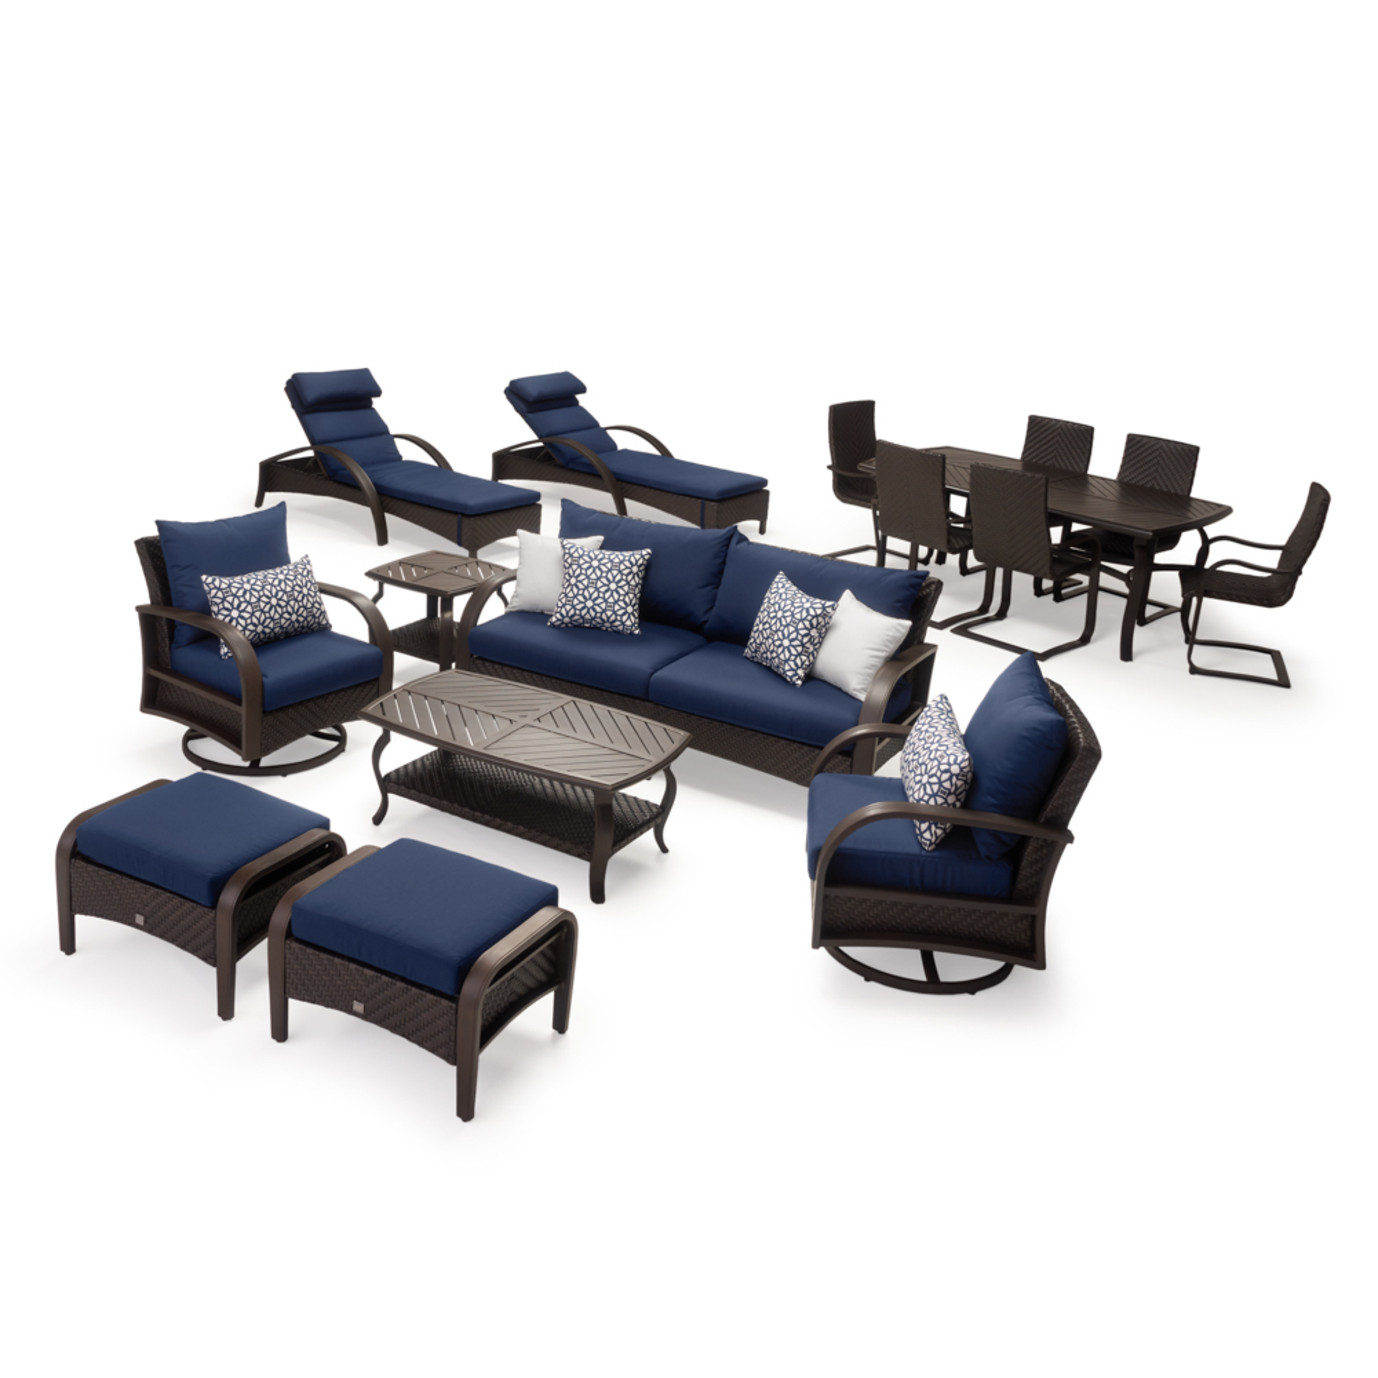 Barcelo™ 16 Piece Estate Collection - Navy Blue